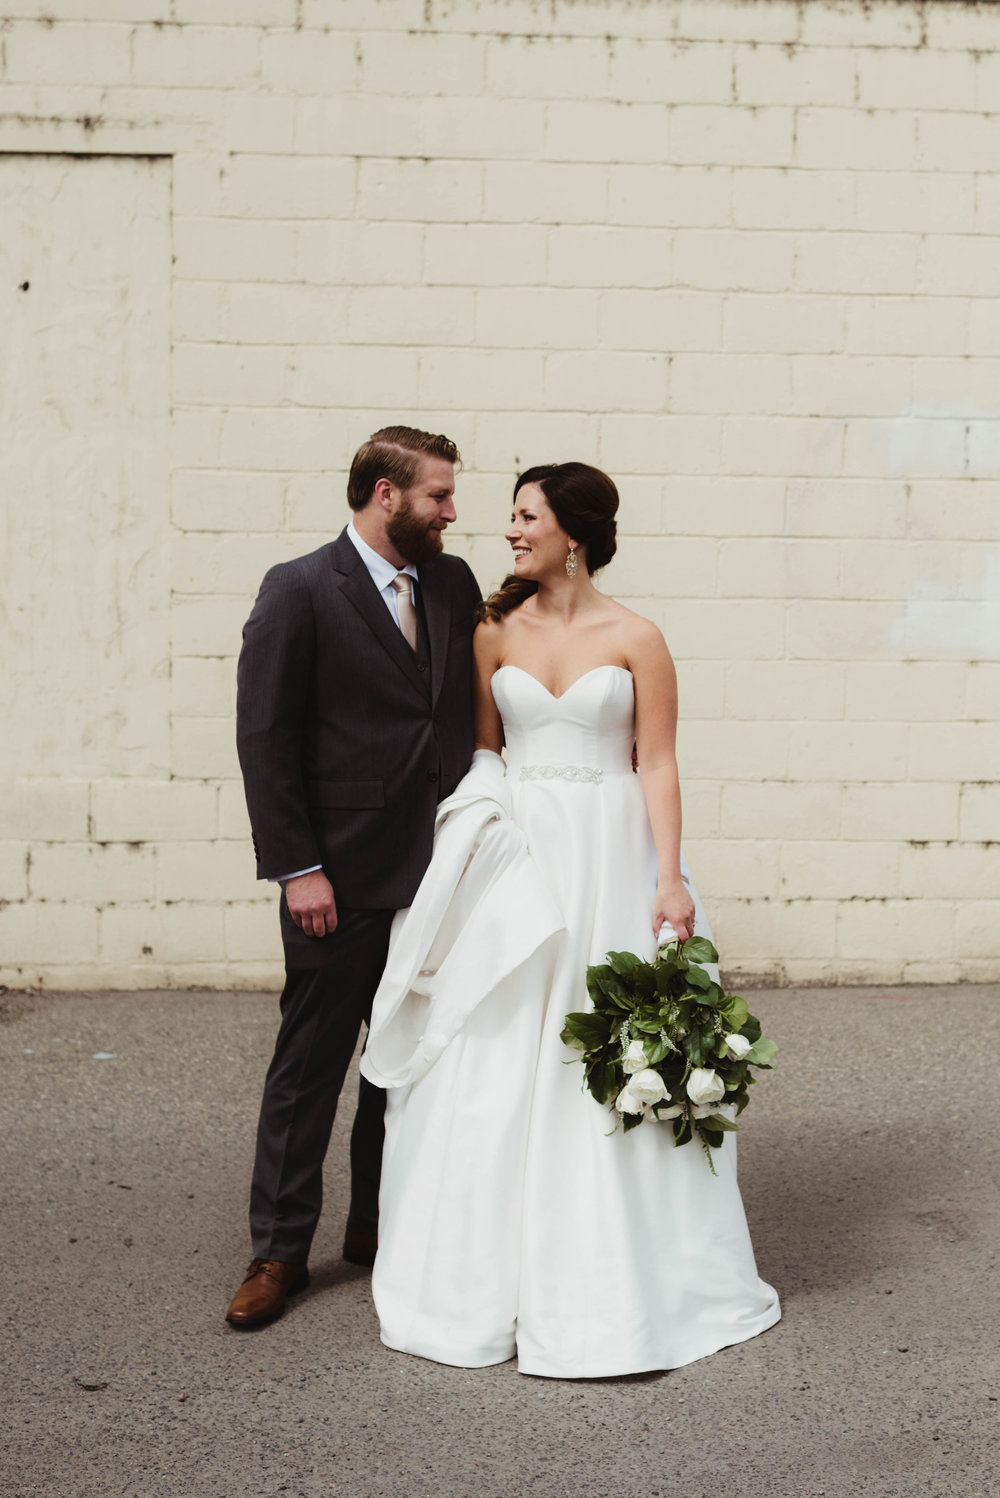 Industrial-Chic Blush Wedding